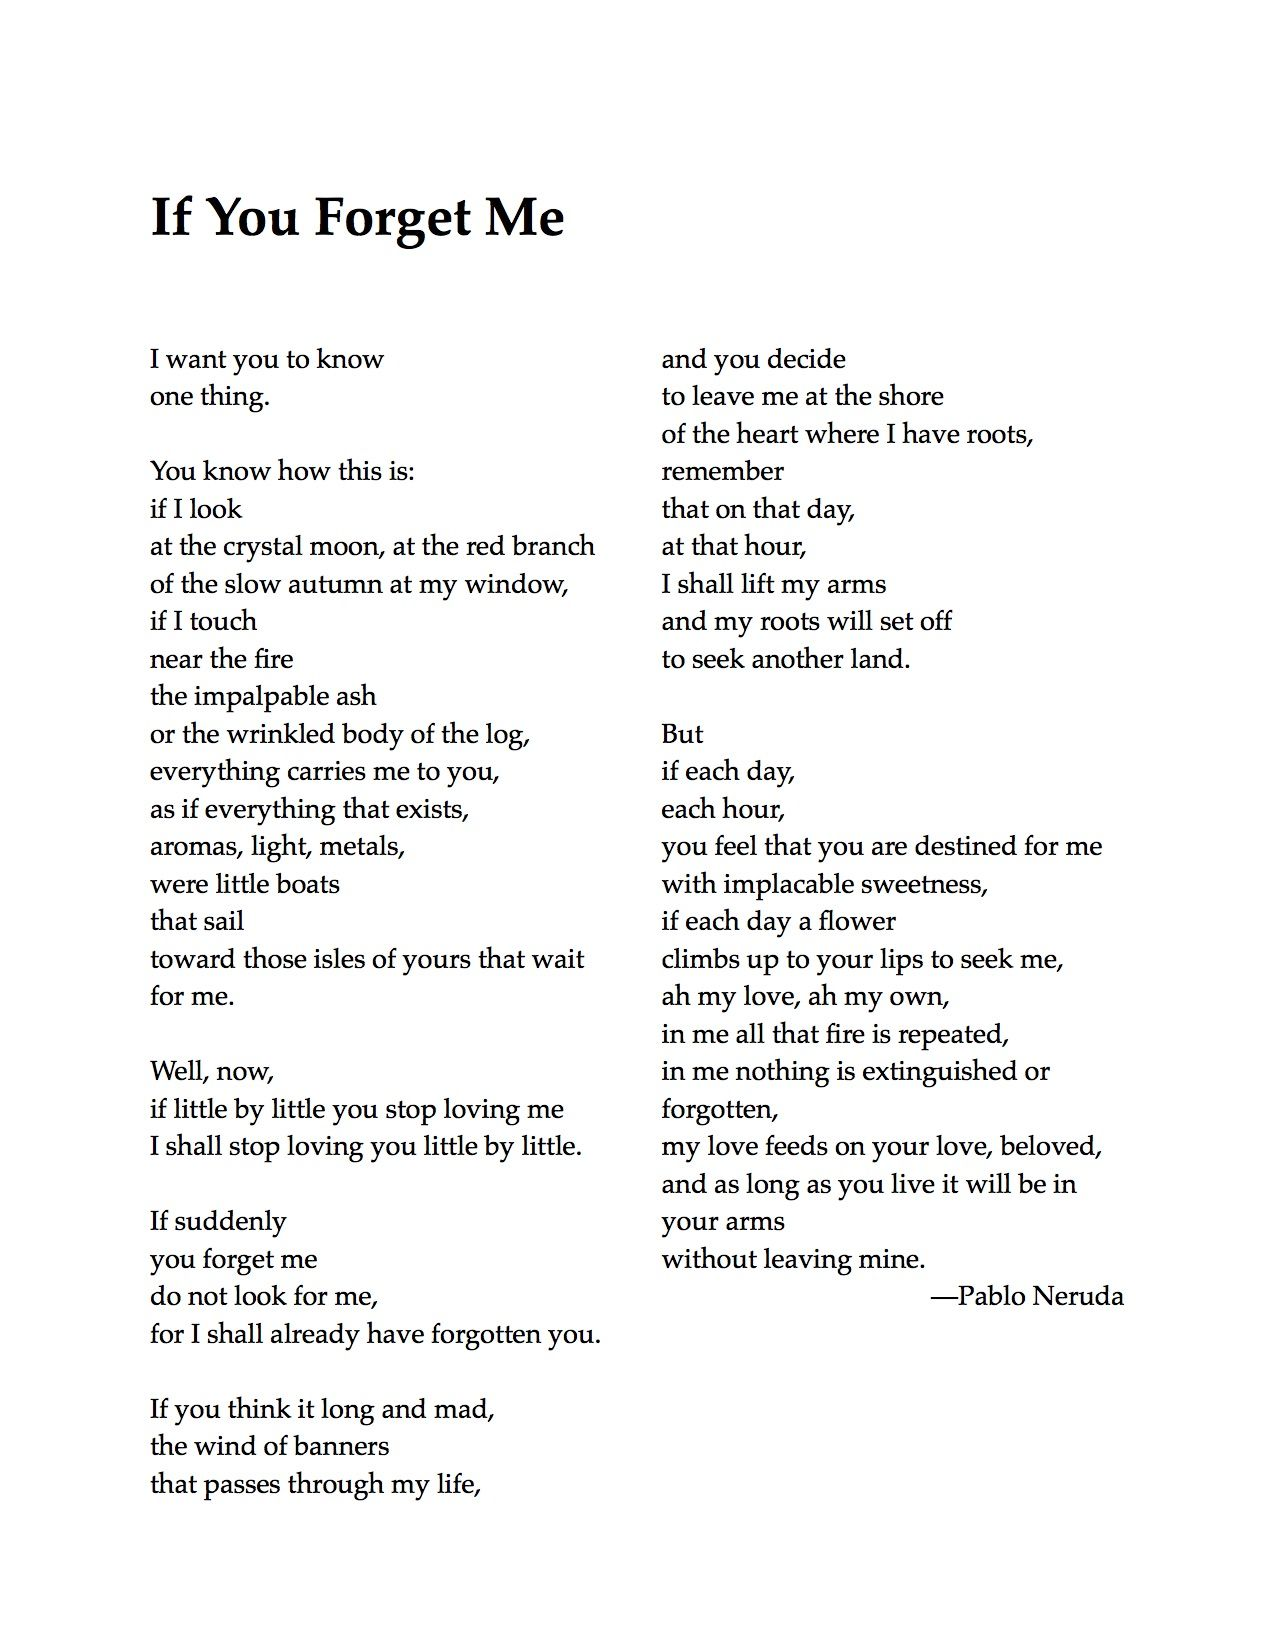 pablo neruda poems if you forget me